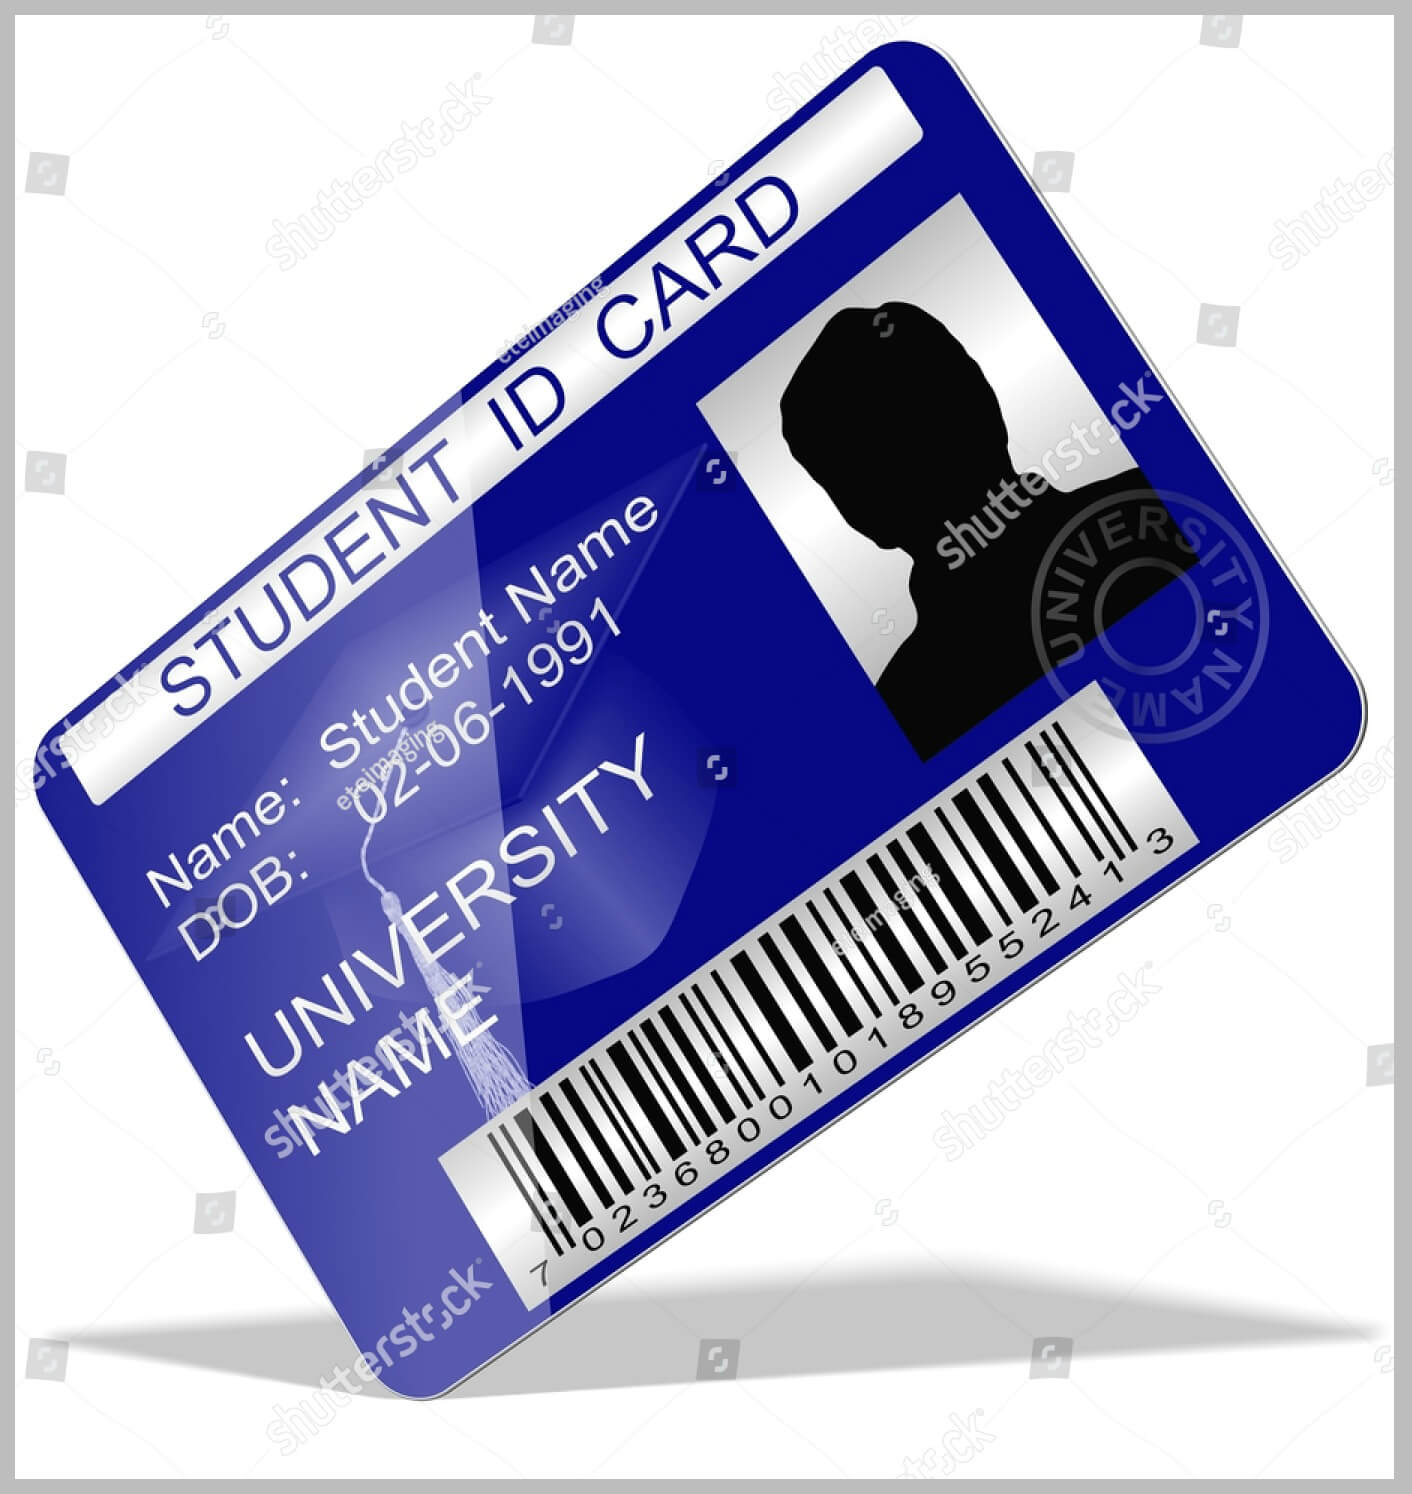 11+ Iconic Student Card Templates - Ai, Psd, Word | Free regarding Isic Card Template